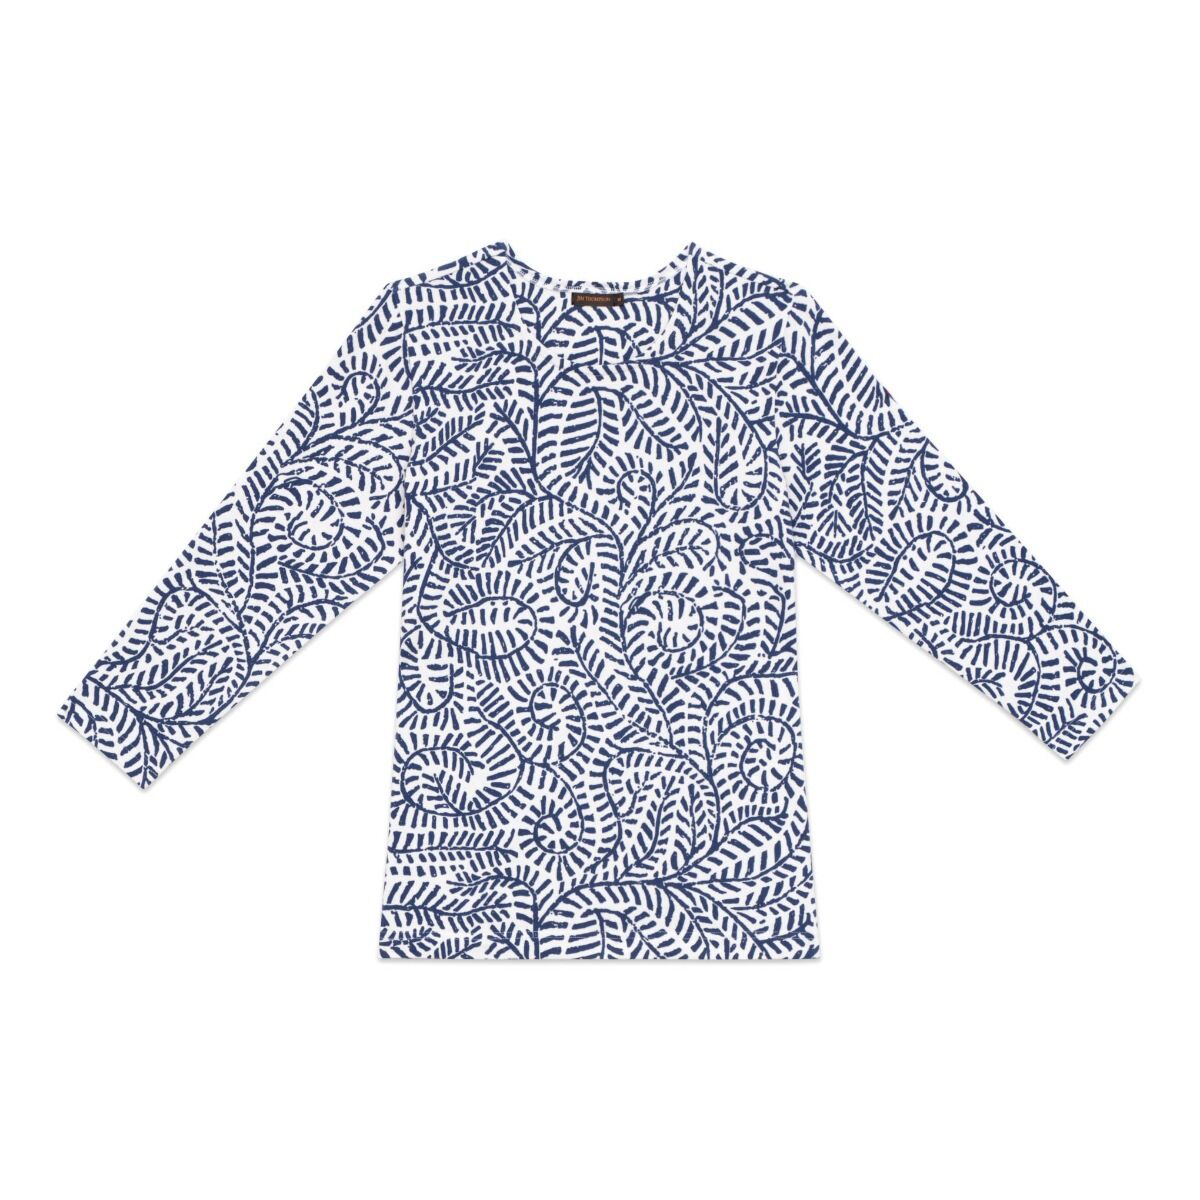 Dashed Line Leaves Long Sleeve Cotton T-shirt - White/Blue